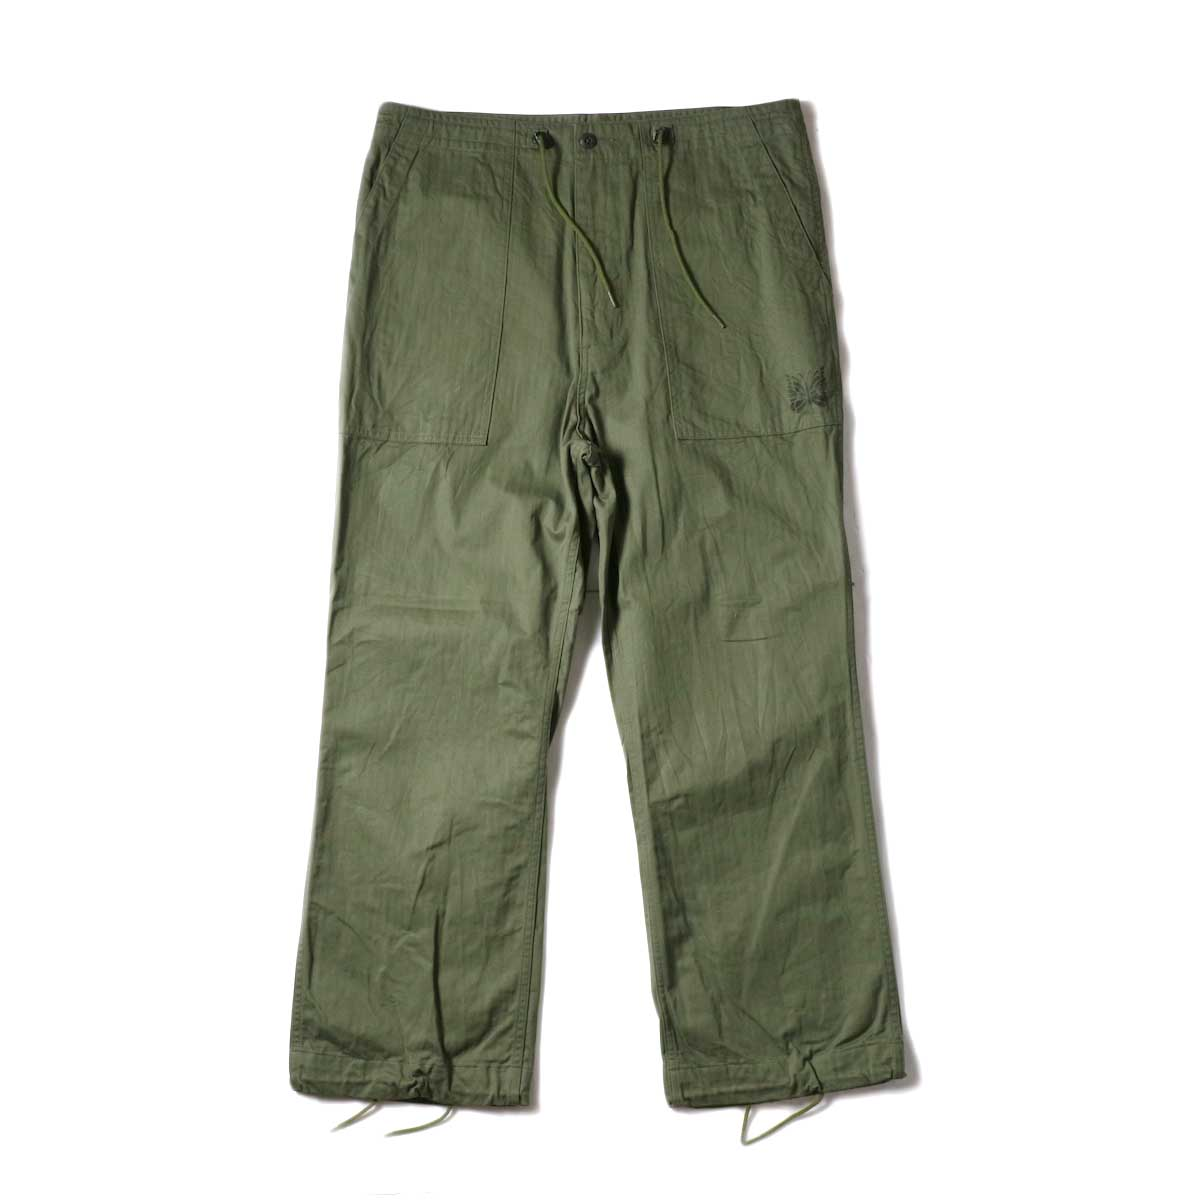 Needles / String Fatigue Pant - Cotton Herringbone (Olive)